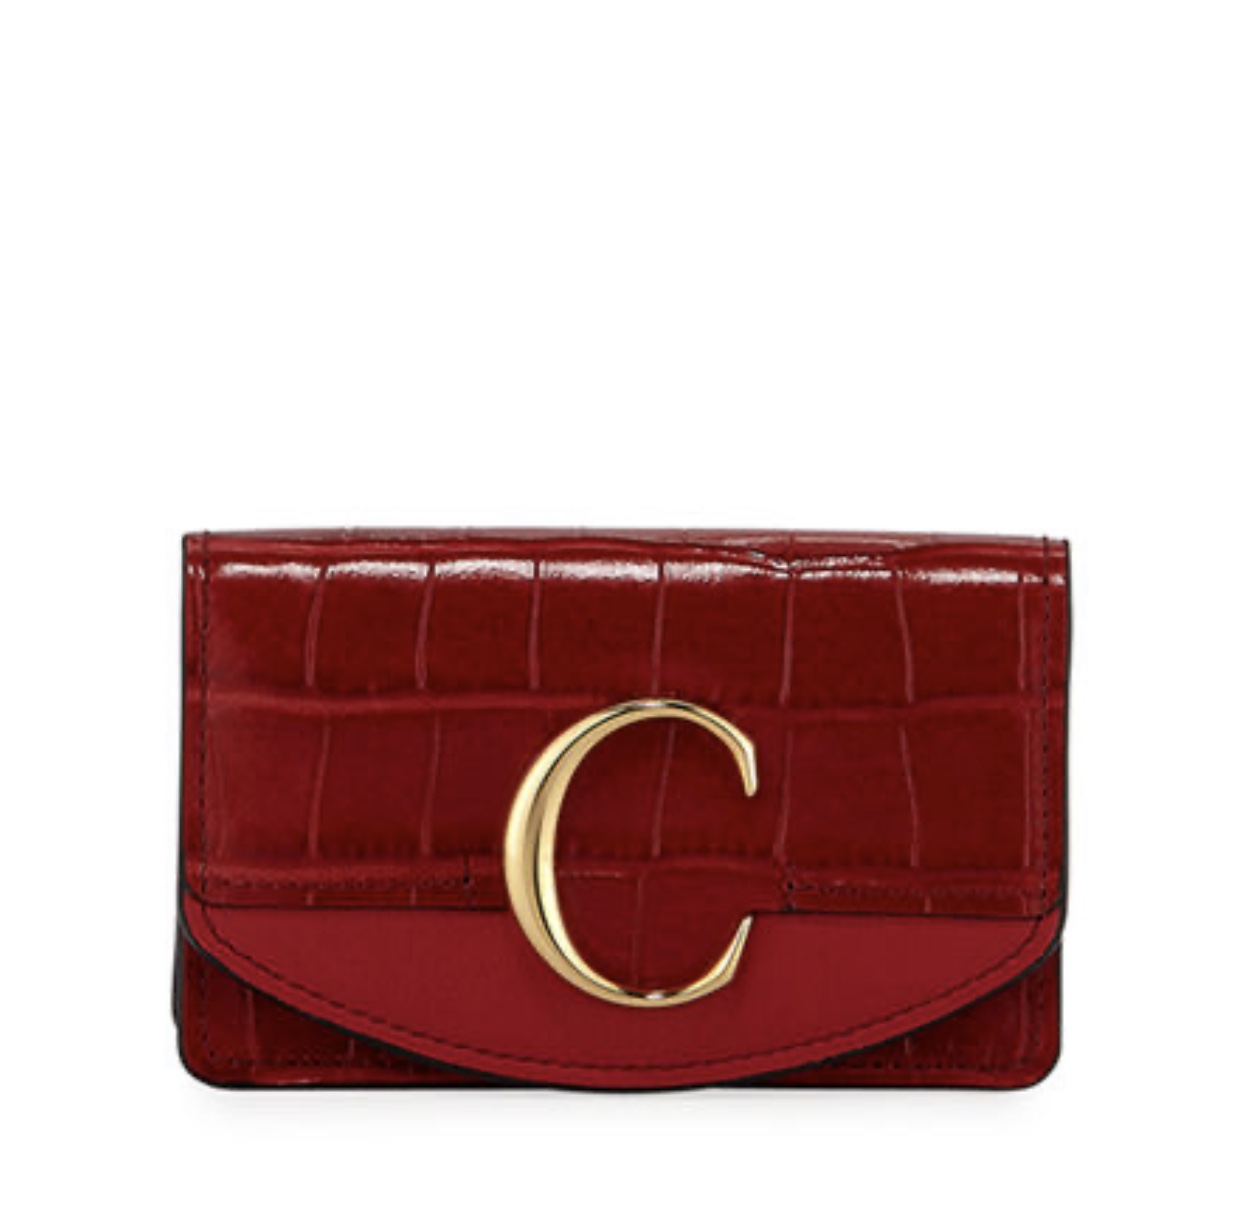 CHLOE C Business Card Case Medium Red